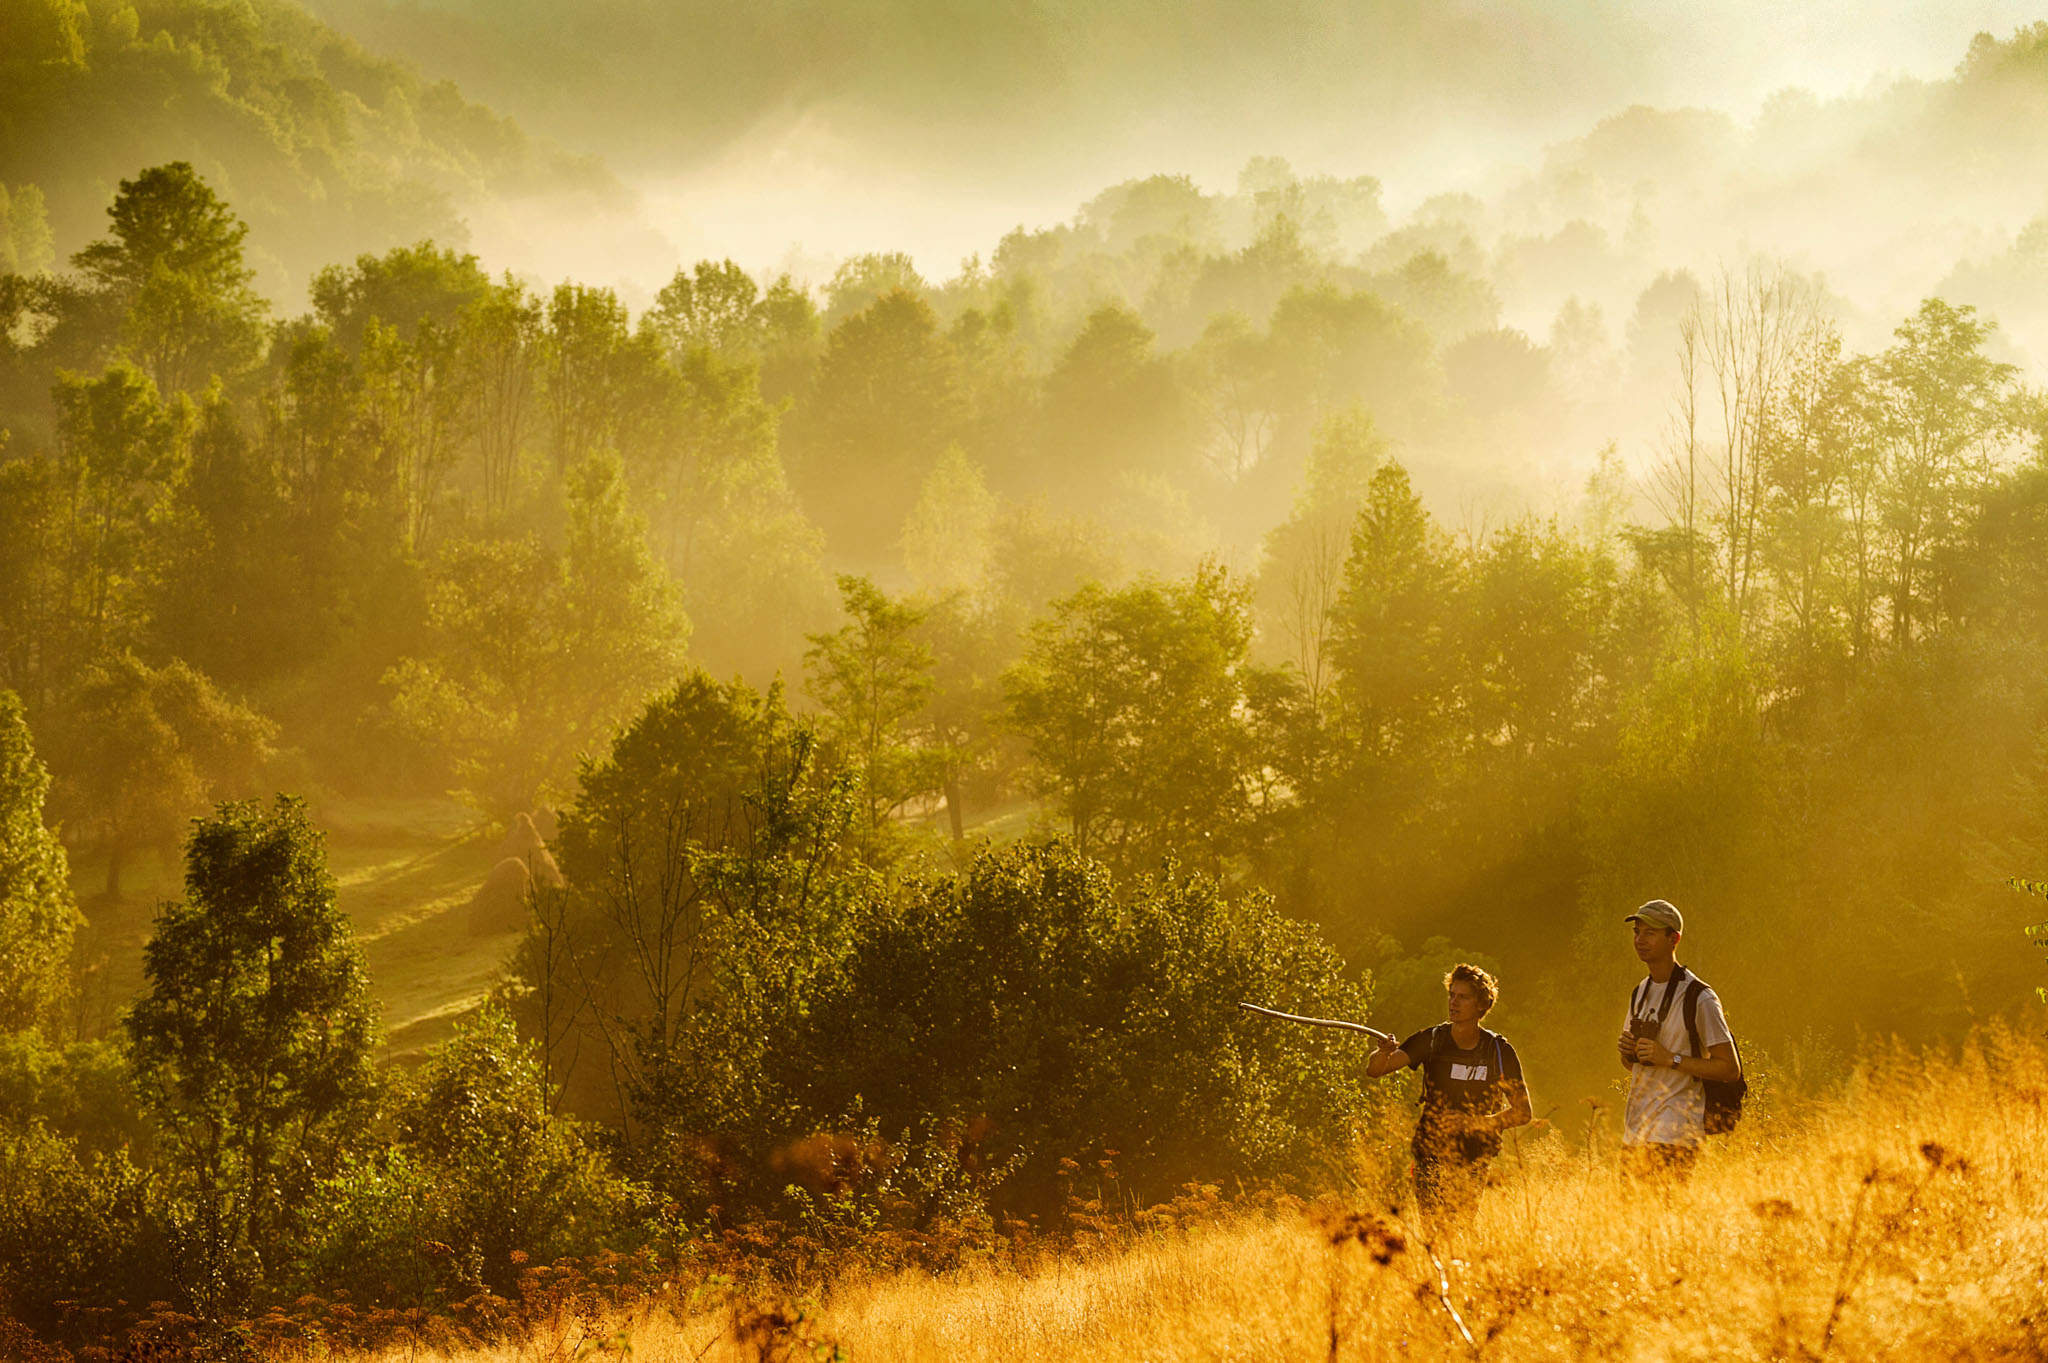 This autumn saw an extended Romanian rewilding team identify, describe and mark hiking and bicycle trails across the Bison Hillock, part of the Southern Carpathians rewilding area.